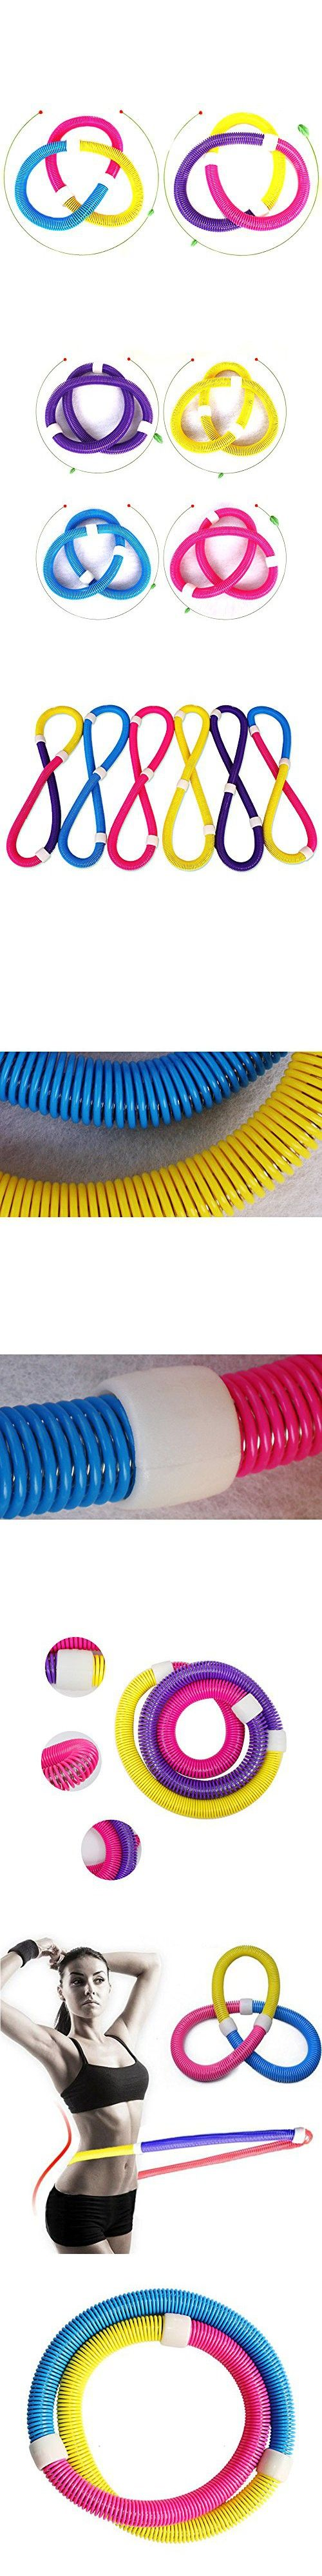 Tri-polar Clearance Sales Soft Yoga Hula Hoop Spring Slimming Thin Waist Fitness Equipment for Home Gym,Pink Yellow Blue